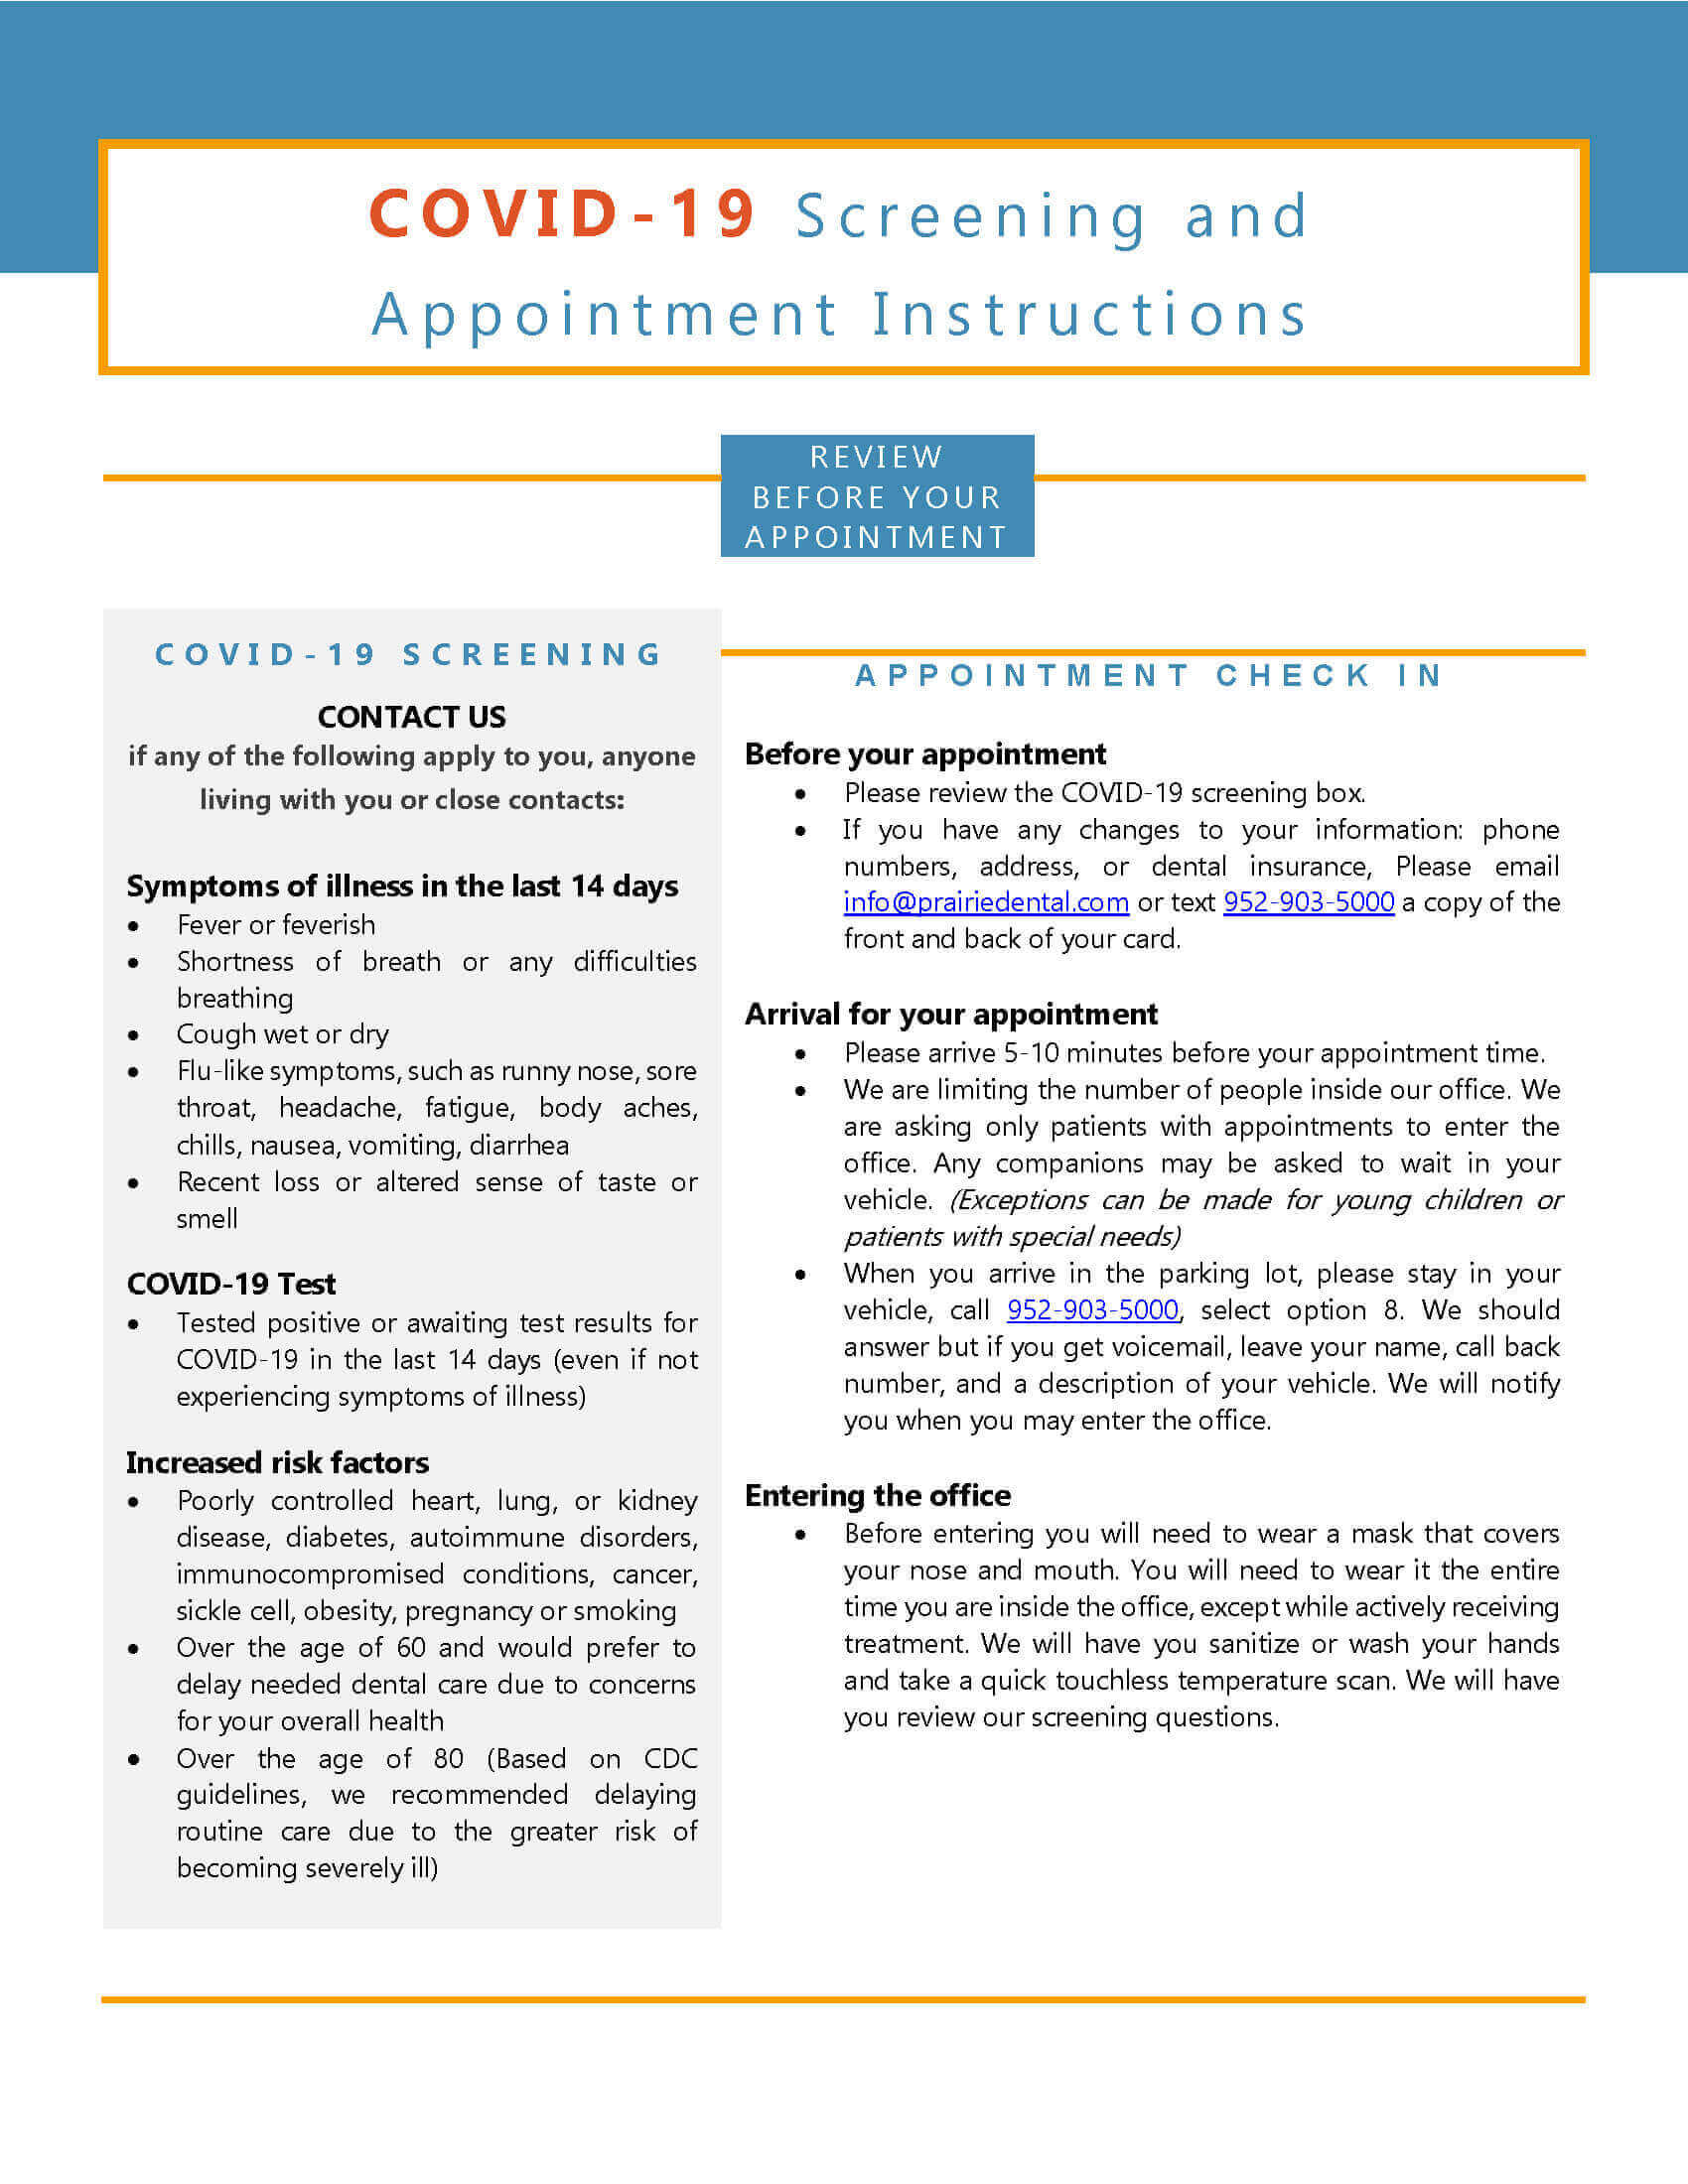 COVID-19 Screening and Appointment Instructions